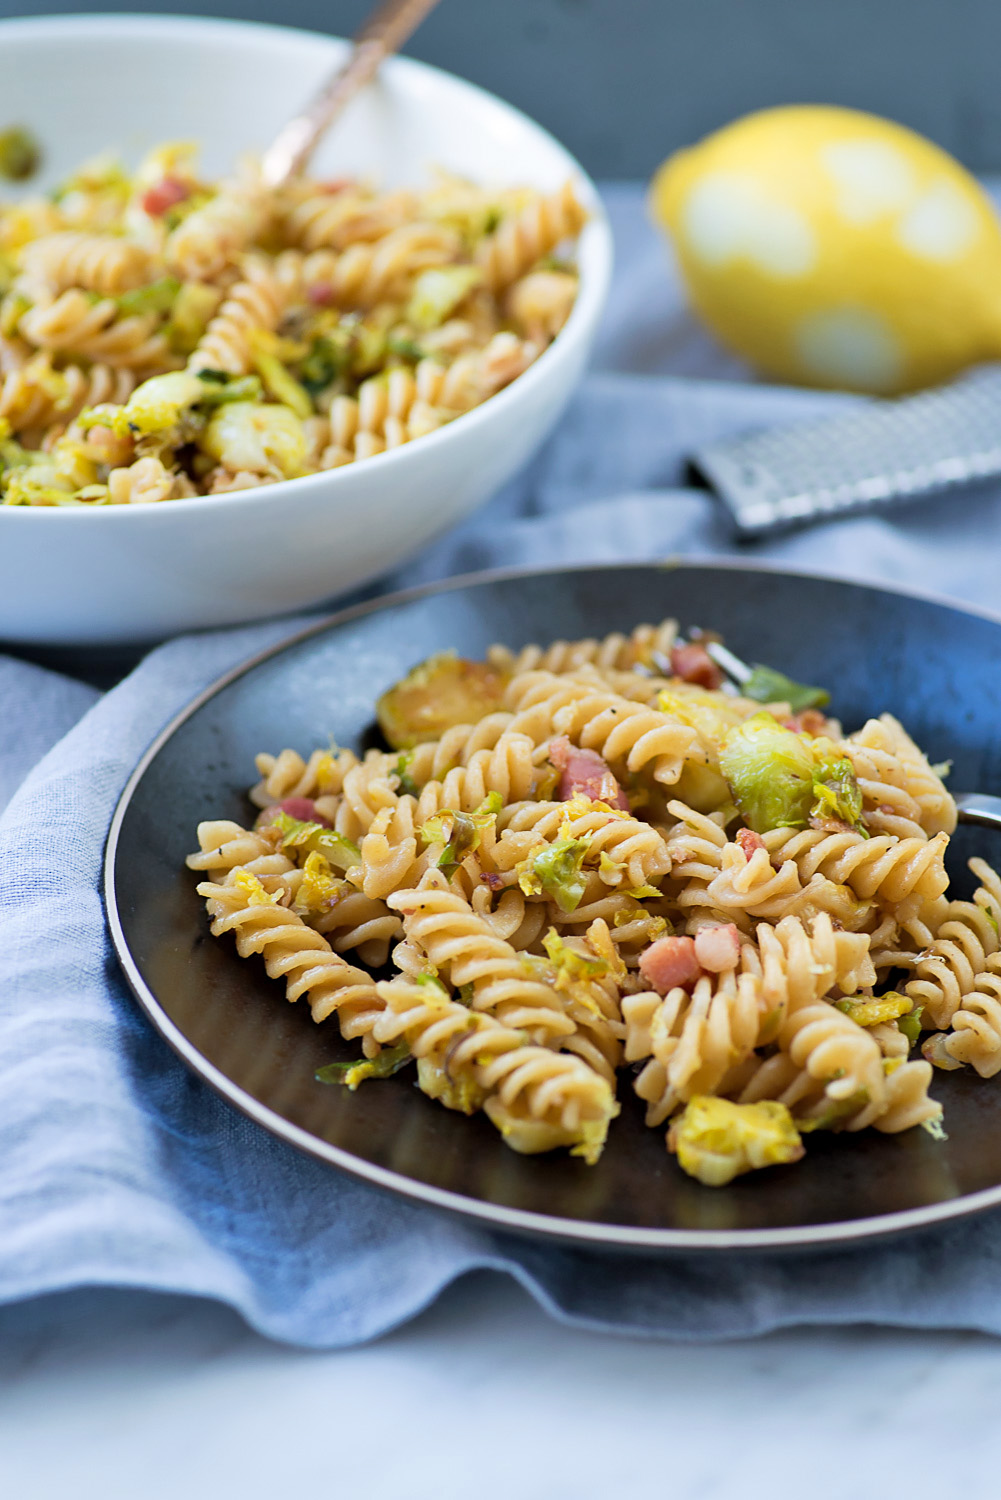 Barilla Wholemeal Fusilli with Brussels Sprouts, Pancetta, Walnuts and Lemon Zest